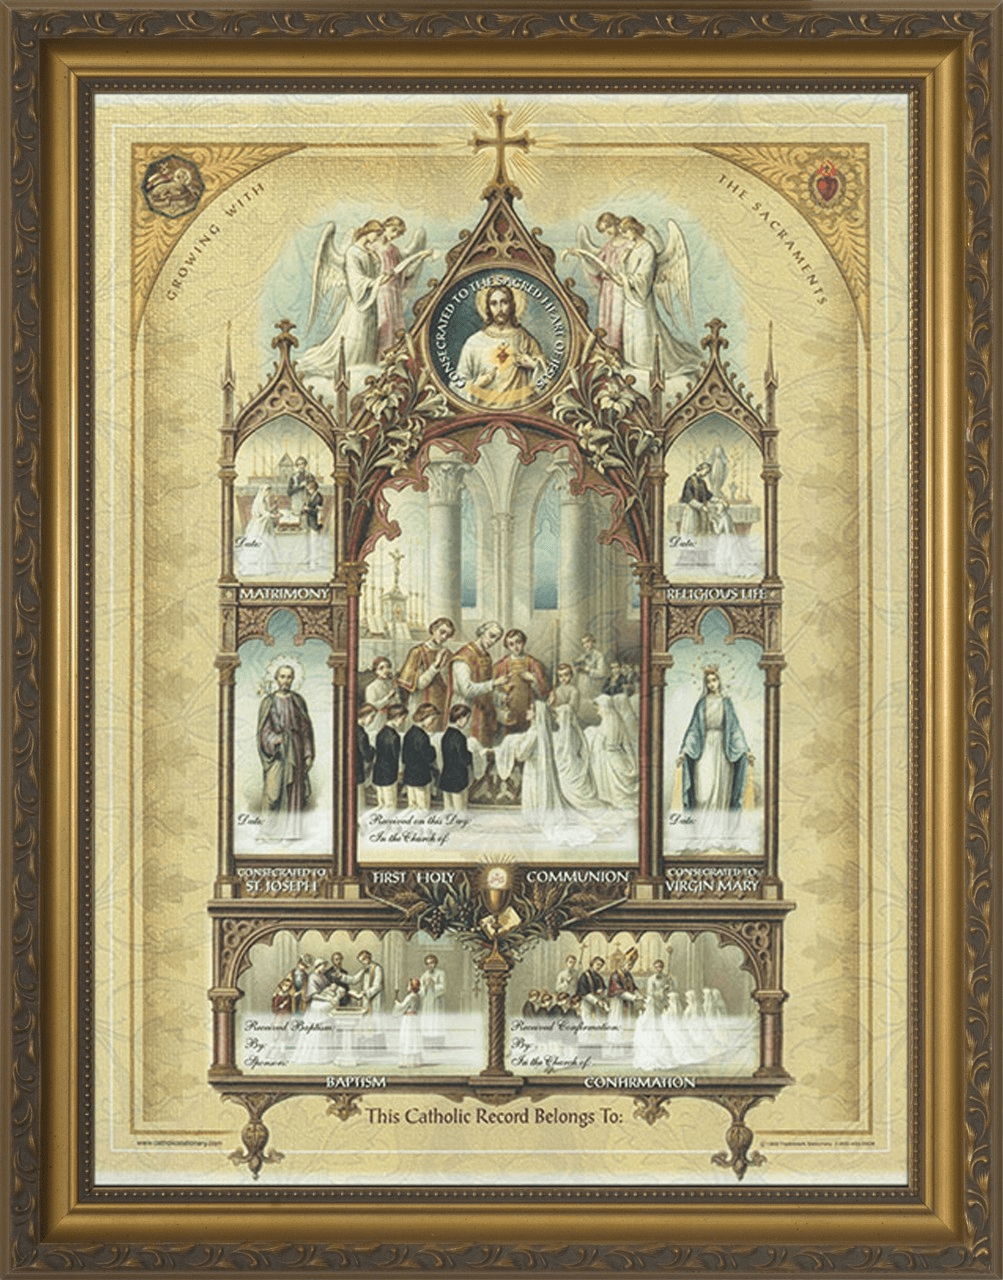 Nelson's Celebration of the Sacraments Certificate Gold Frame Wall Picture